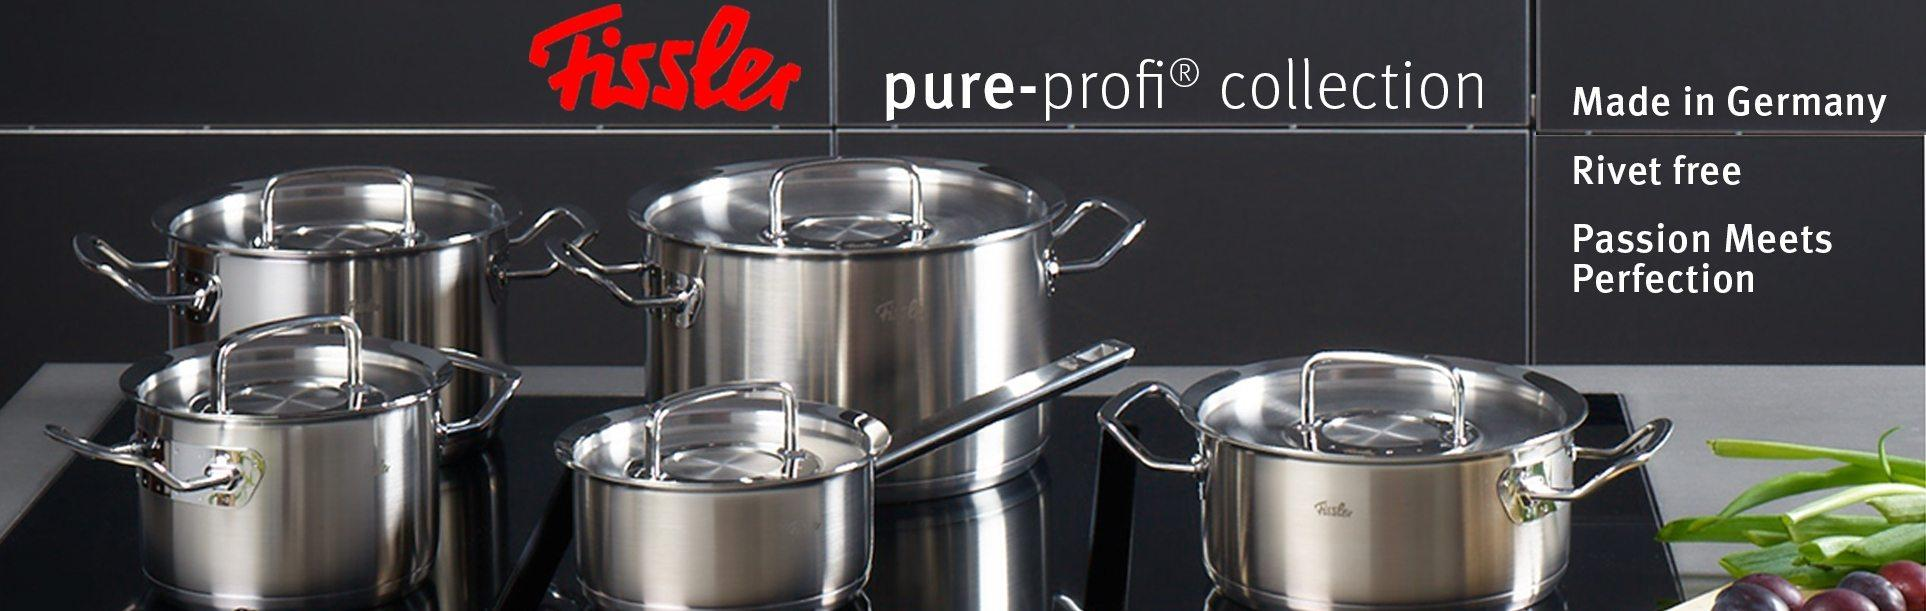 Fissler lifestyle products slide 4